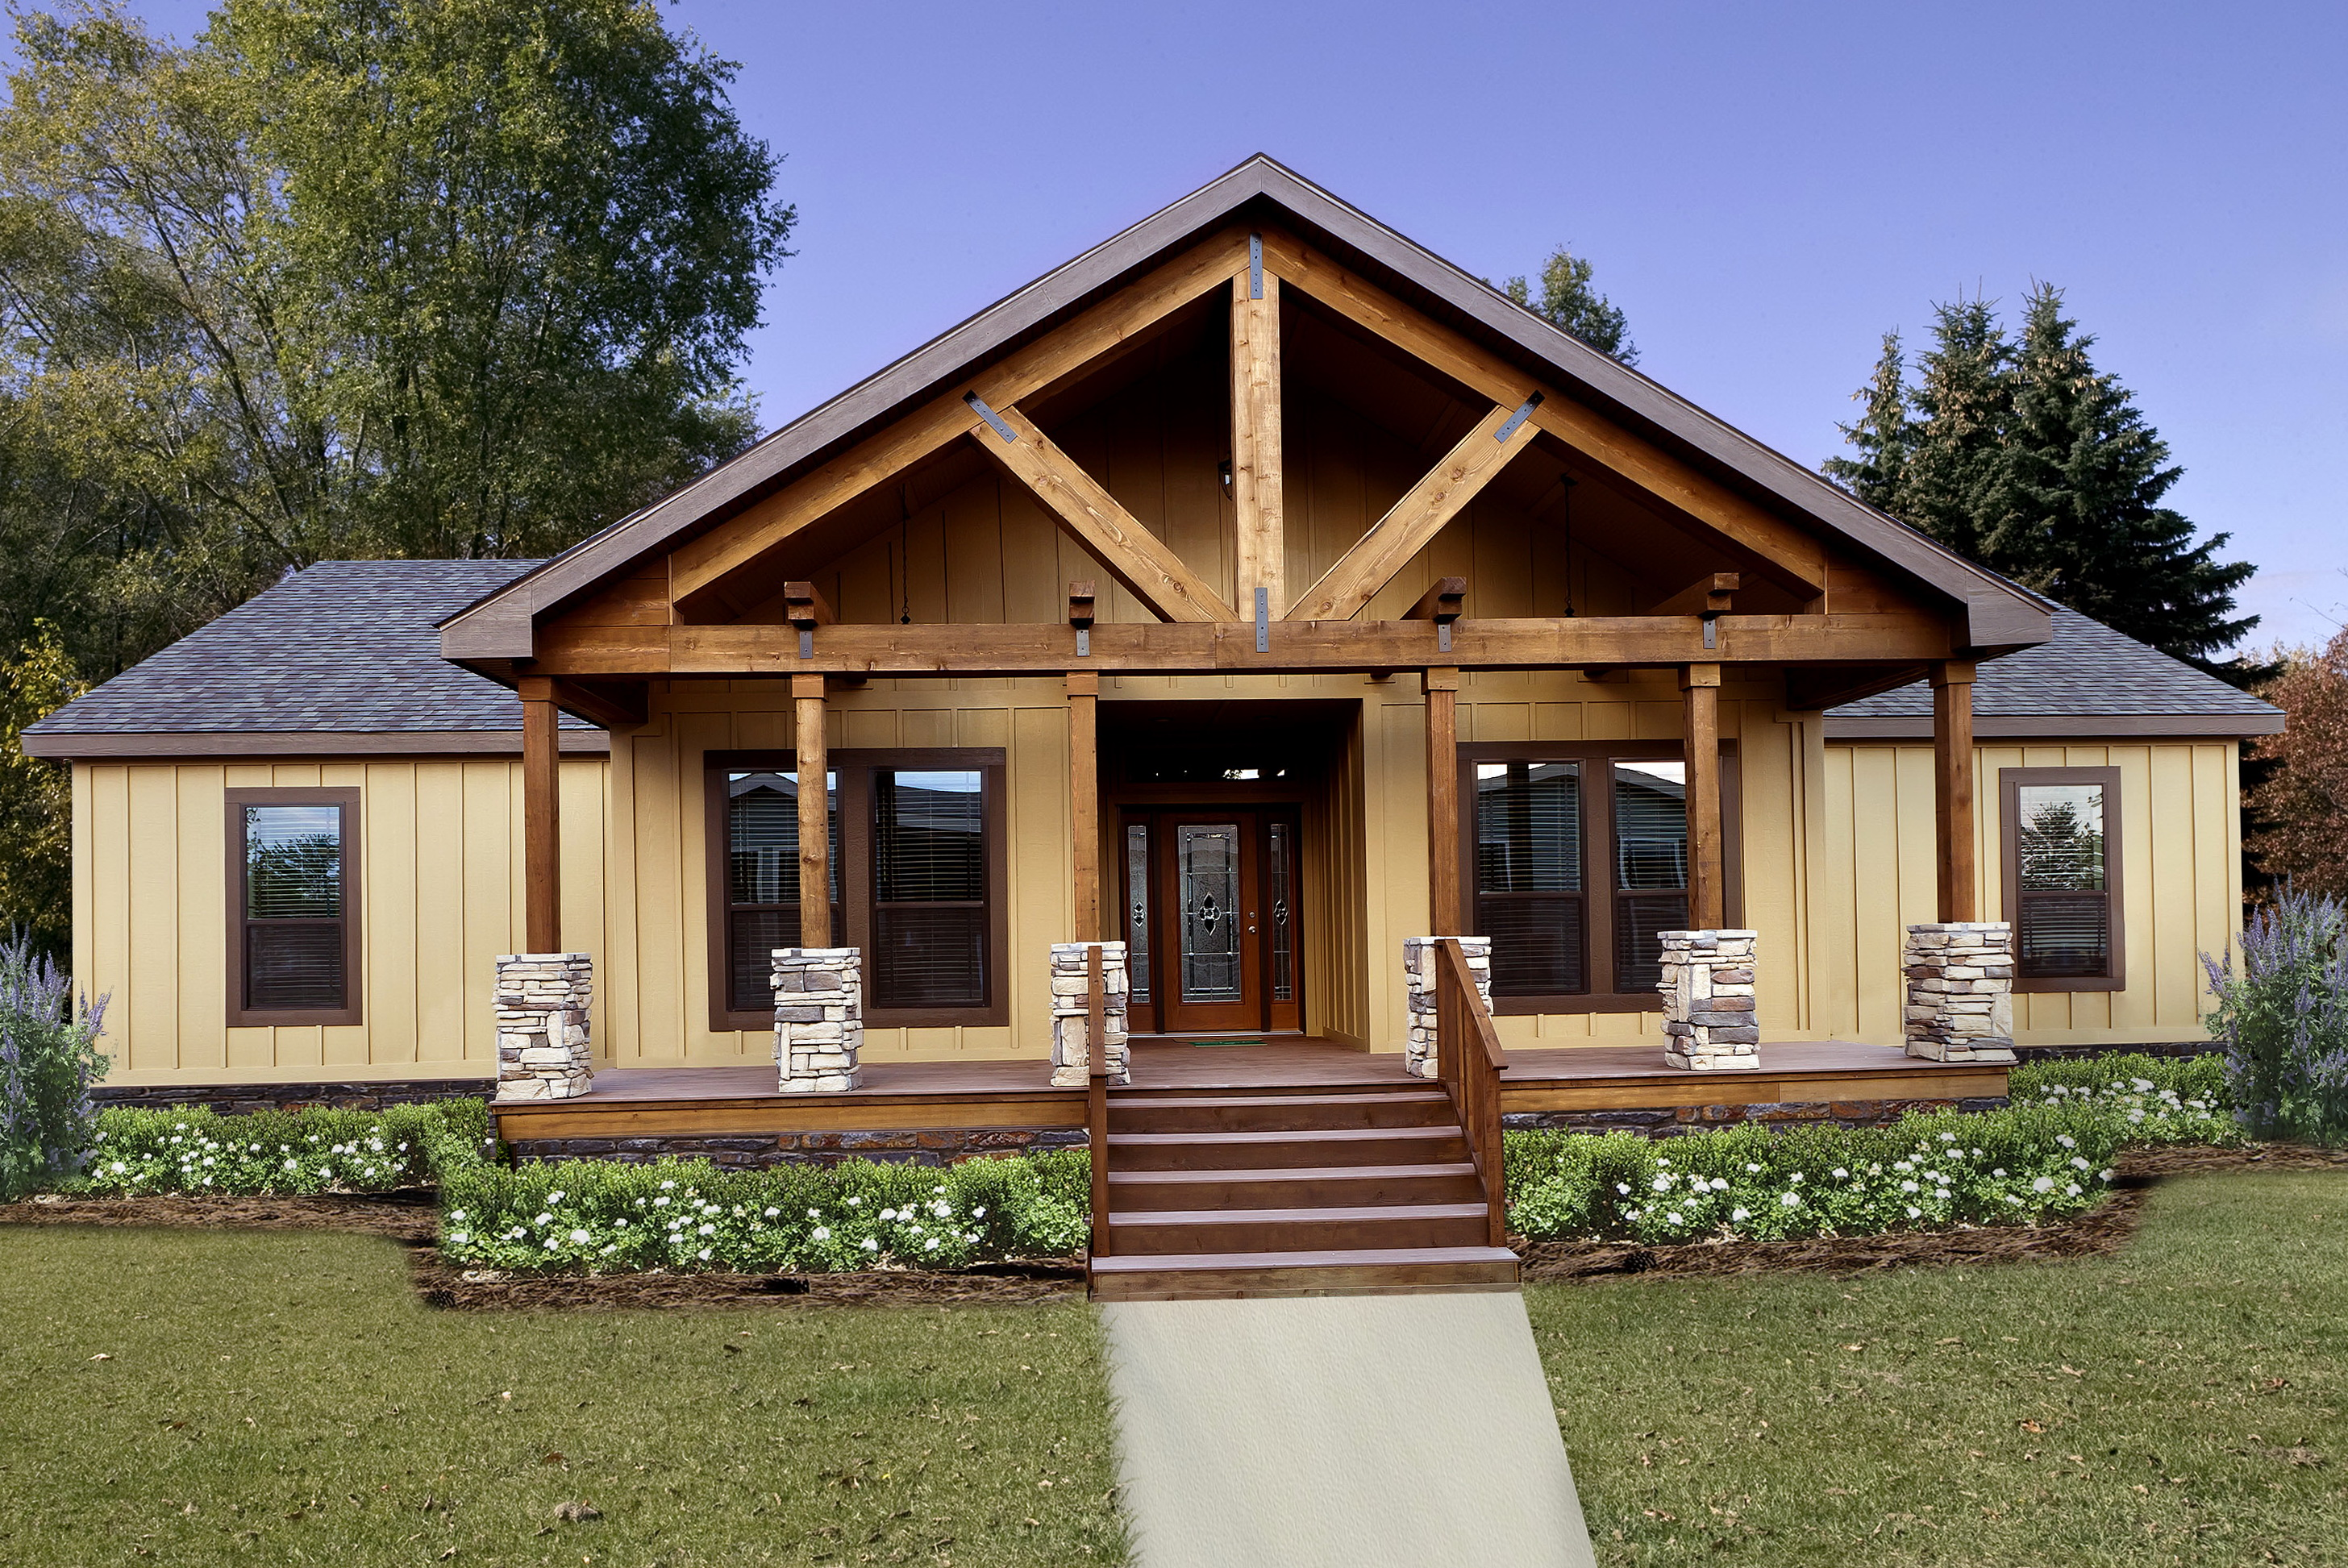 Prefab Porches front porch kits for sale | home design ideas